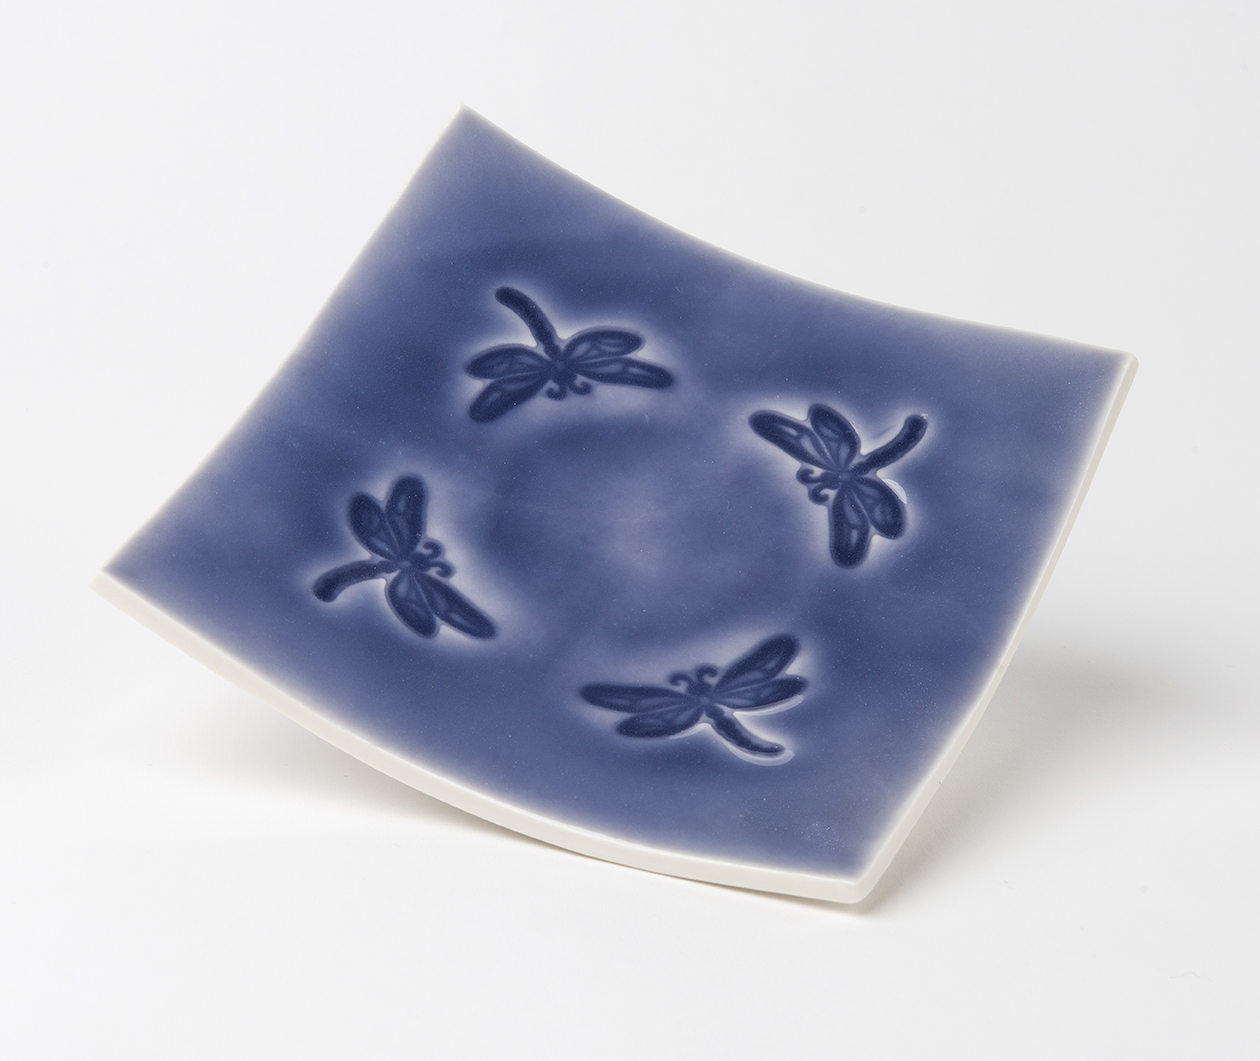 Embossed Porcelain Dish 18 cm square